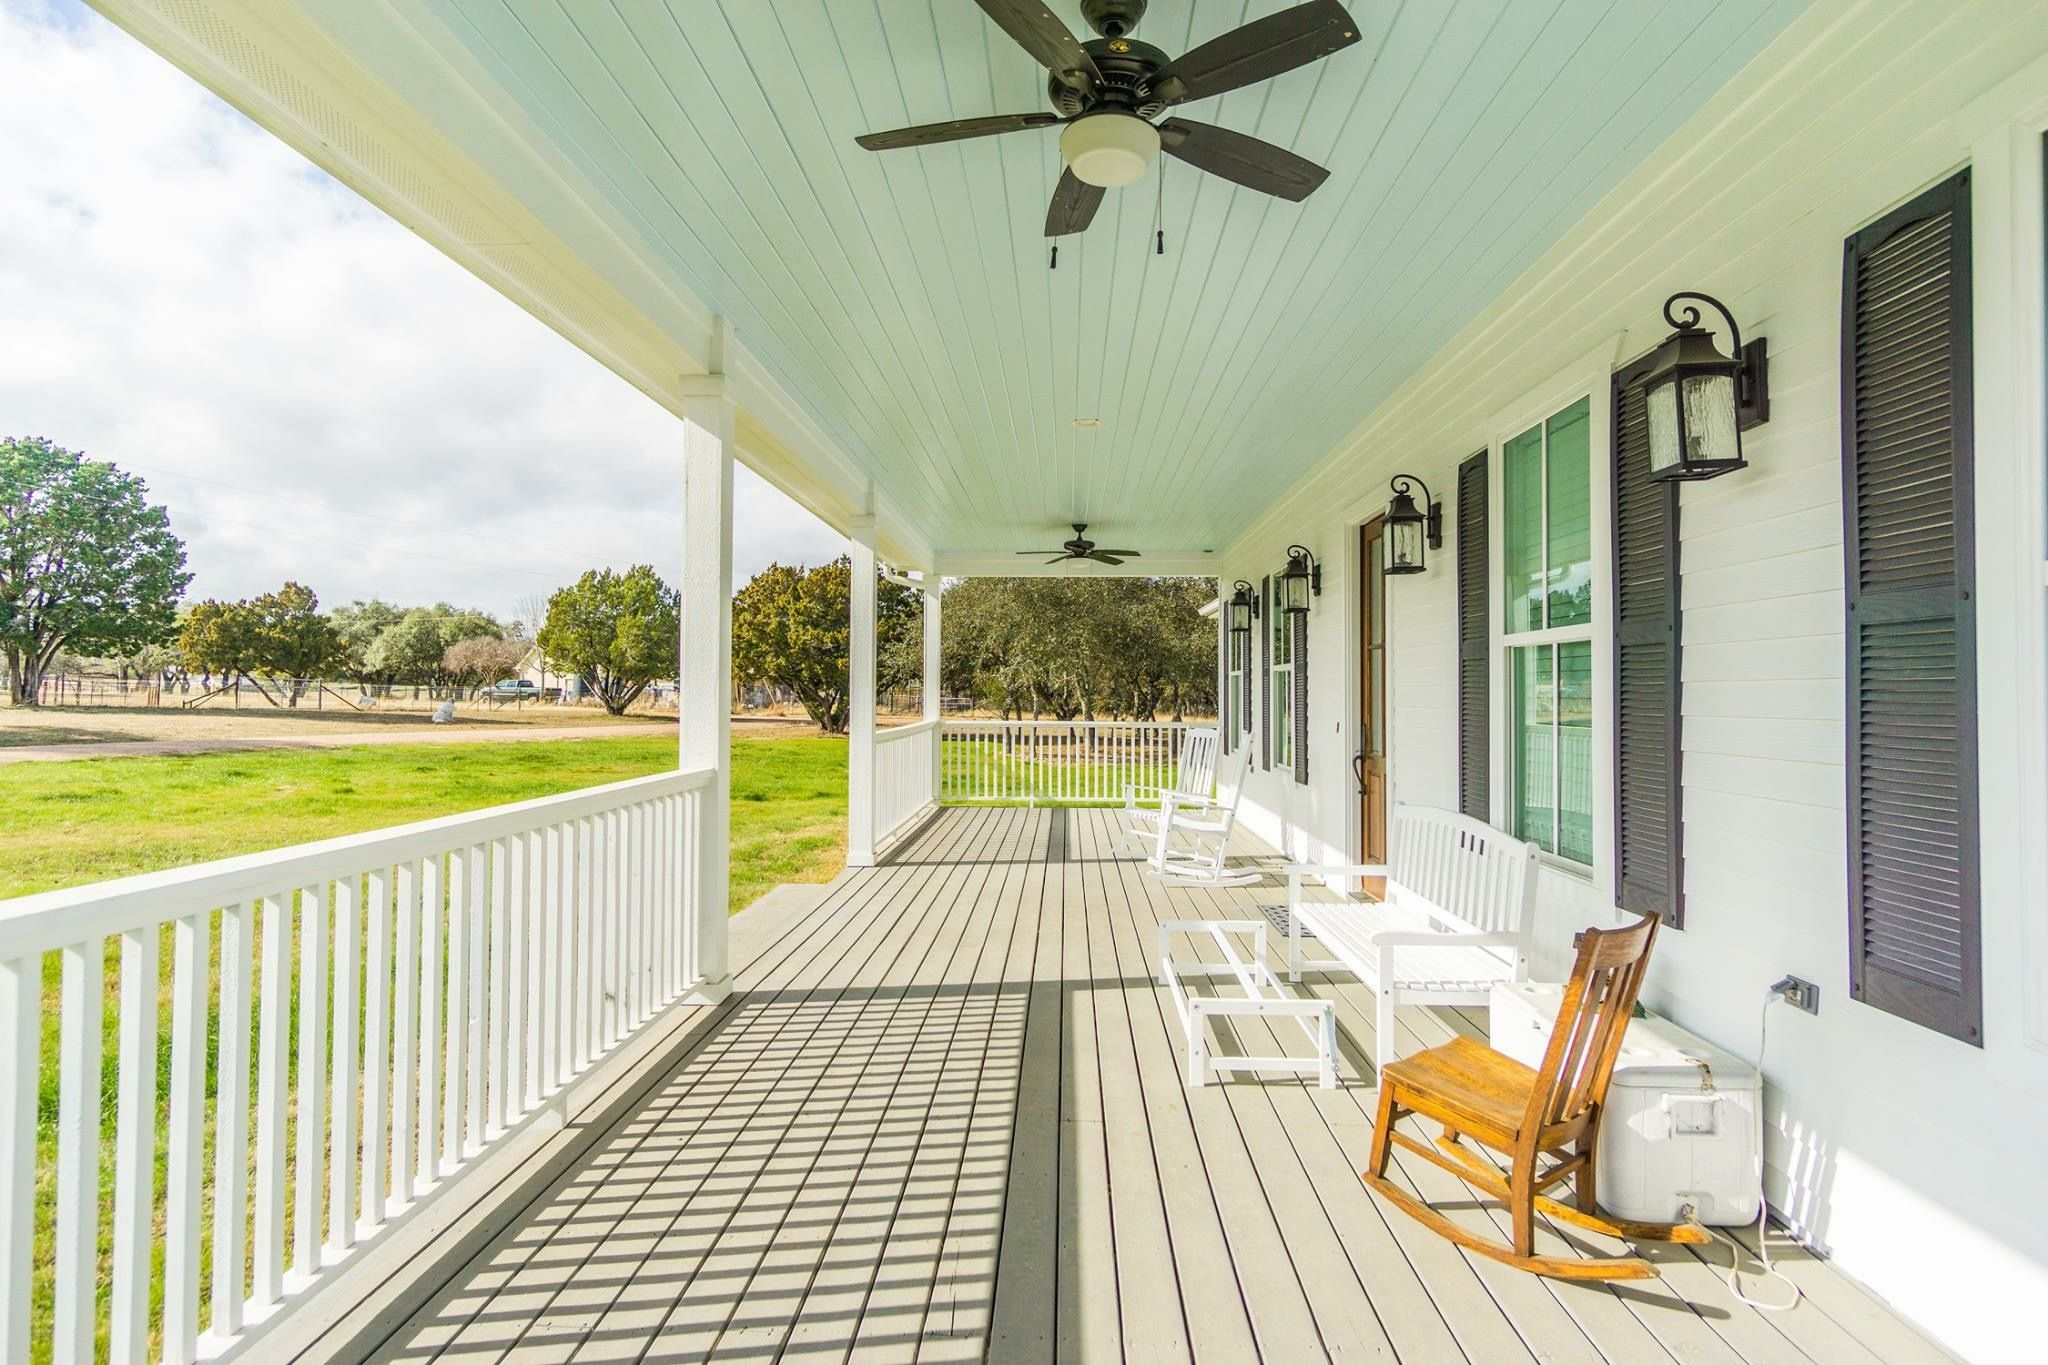 Classic Old Looking Country Porch That Is New Construction Porch Lanterns Ceiling Fans Light Blue Ceiling To Pr Building Design Porch Lanterns Custom Homes